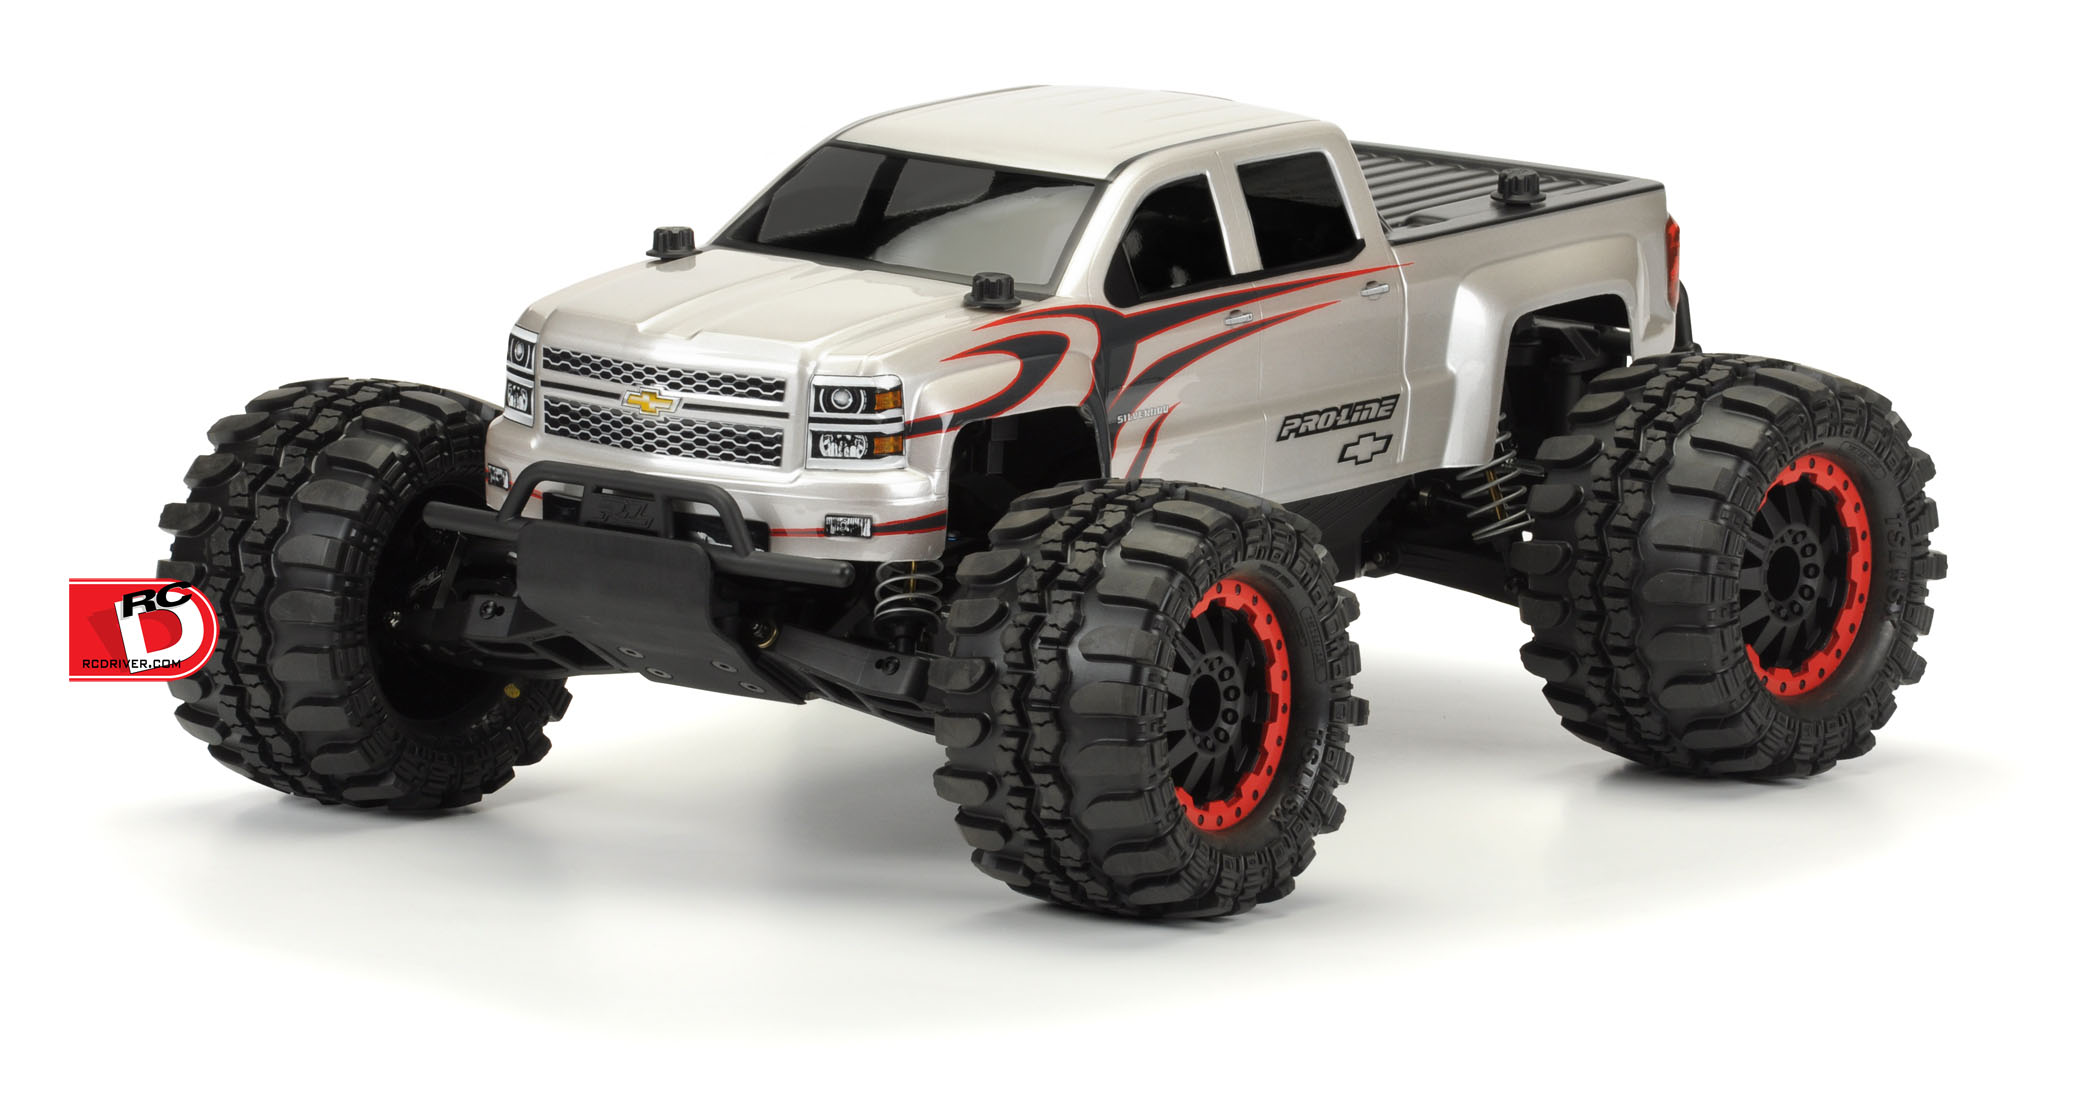 Chevy Silverado and Ford F 150 SVT Raptor Clear Bo s for the Pro MT